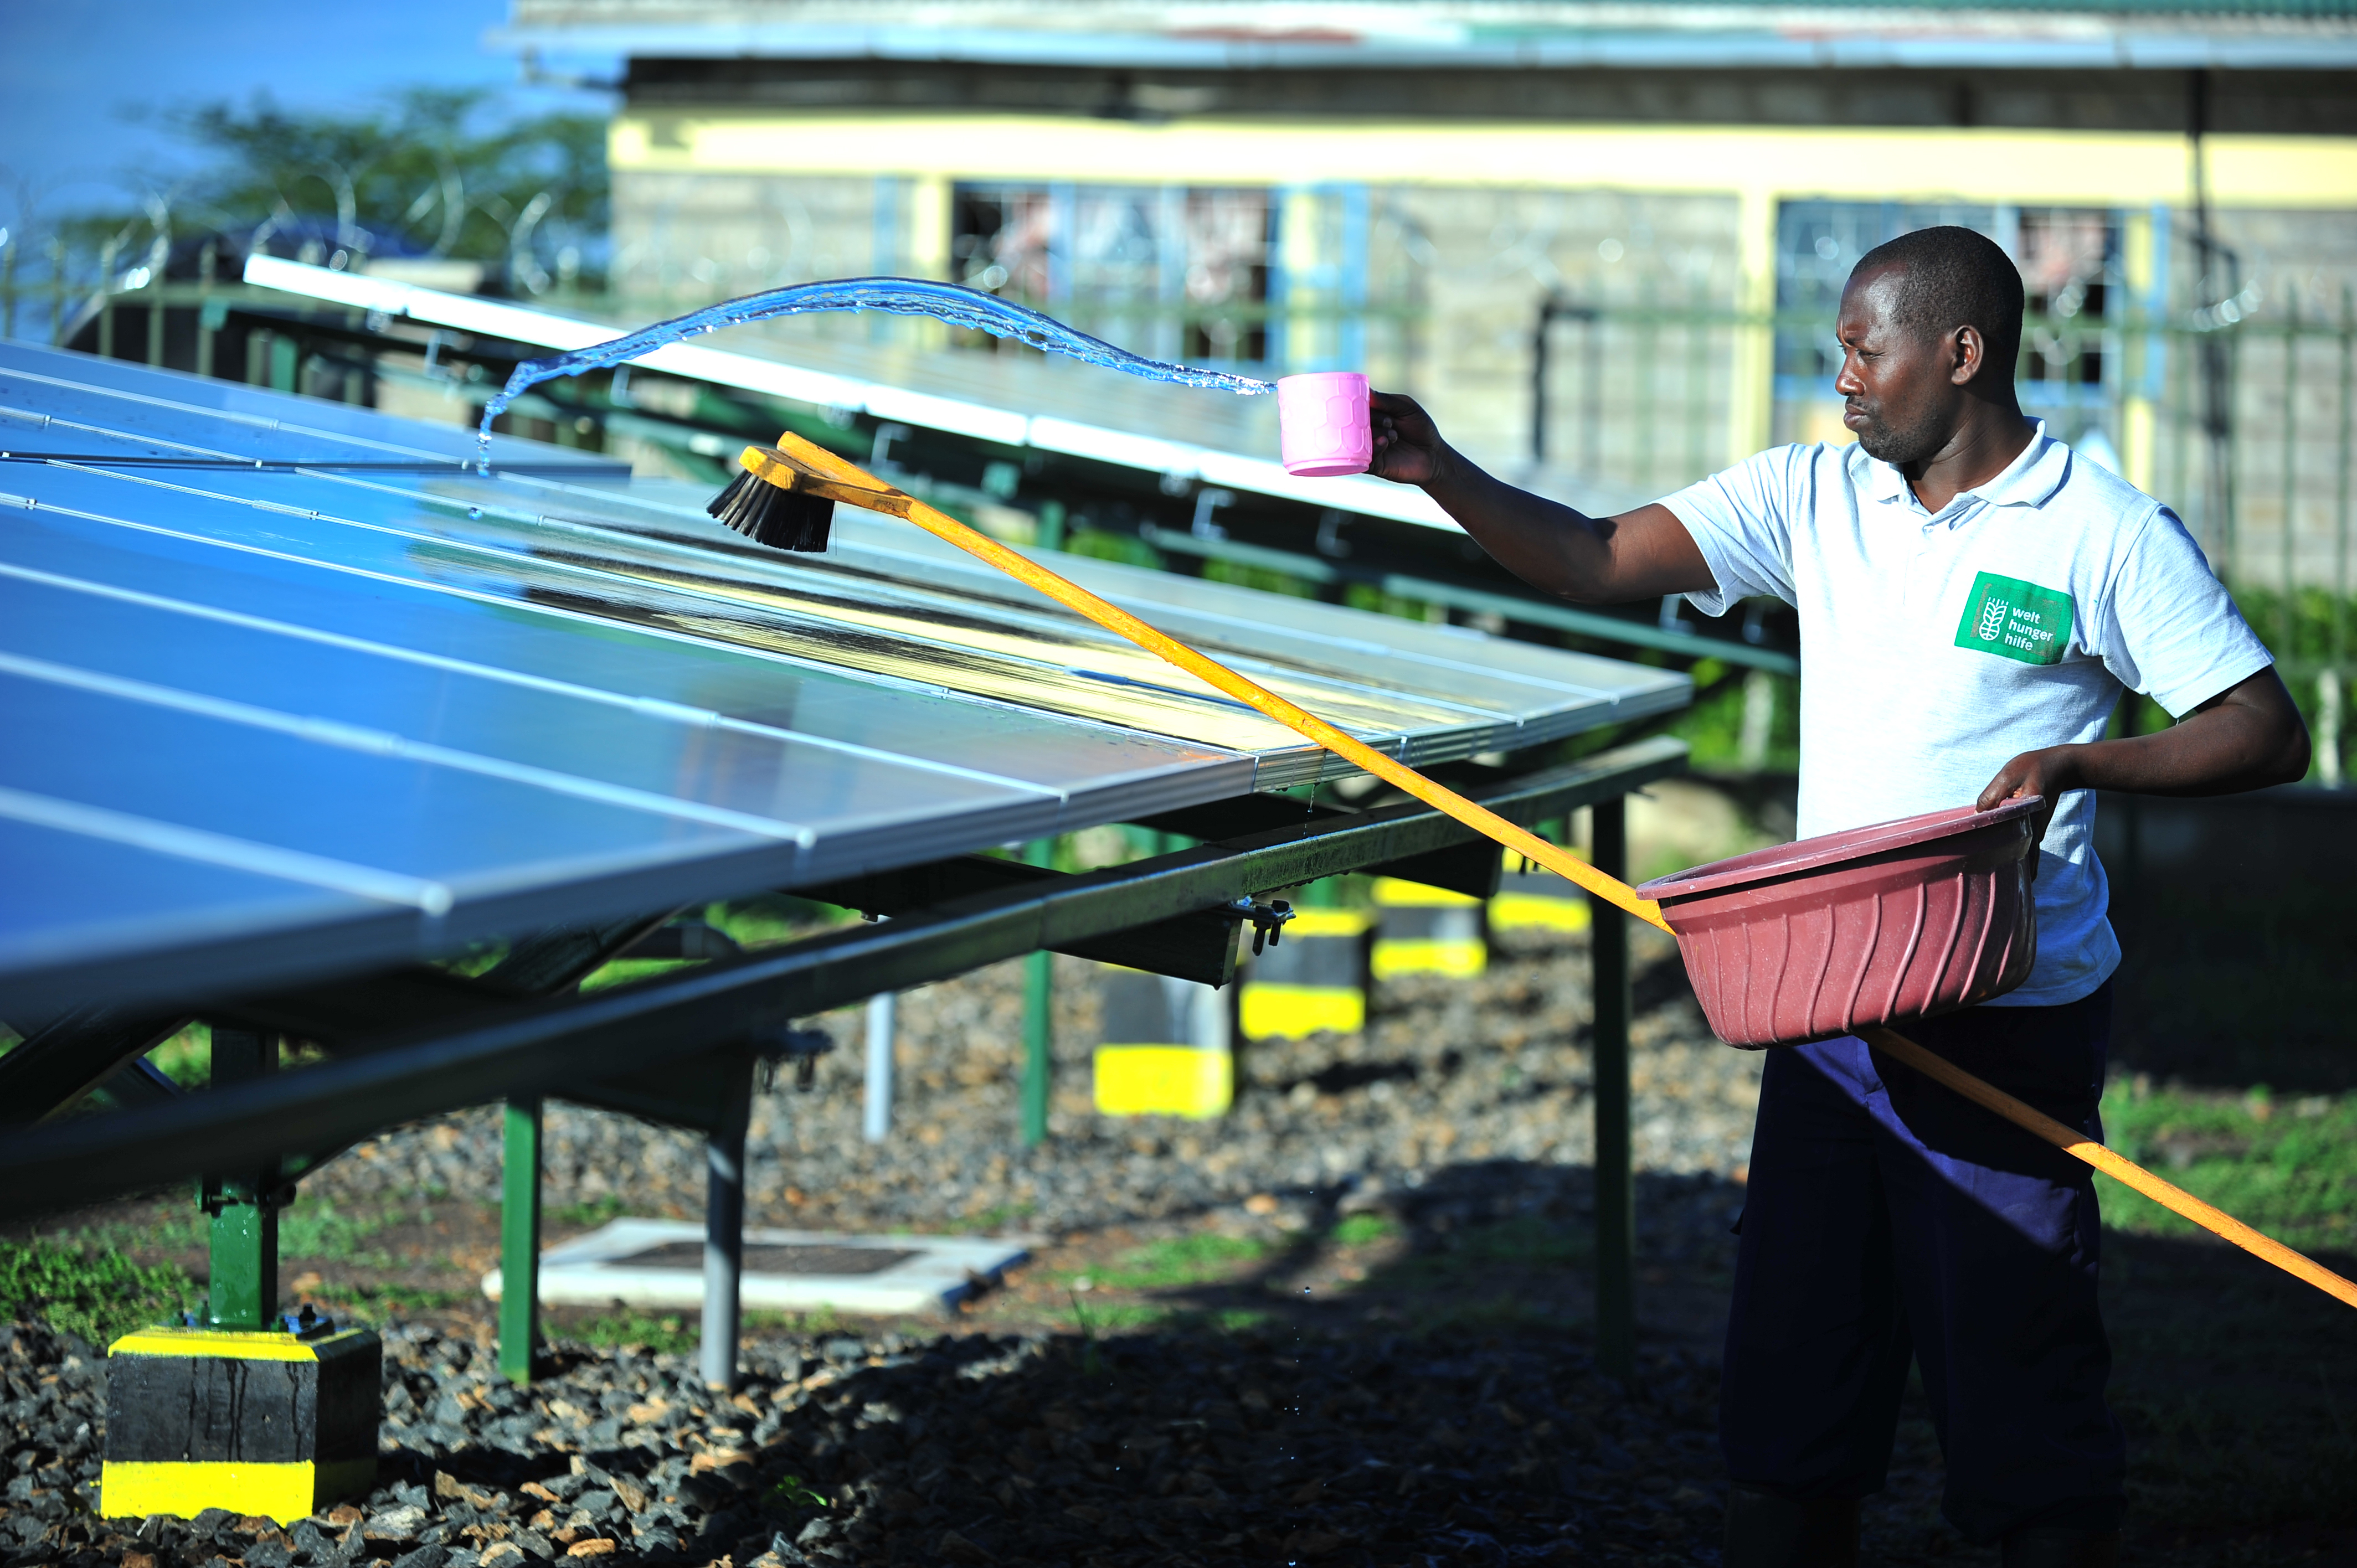 Silandoi Matikoi caretaker of Talek Solar Power Plant in Narok County, Kenya cleans the solar panels used to supply power to the residents of Talek town. Constructed with the help of the German government, the power plant will supply clean green power to the residents of Talek who are not connected to the National power grid